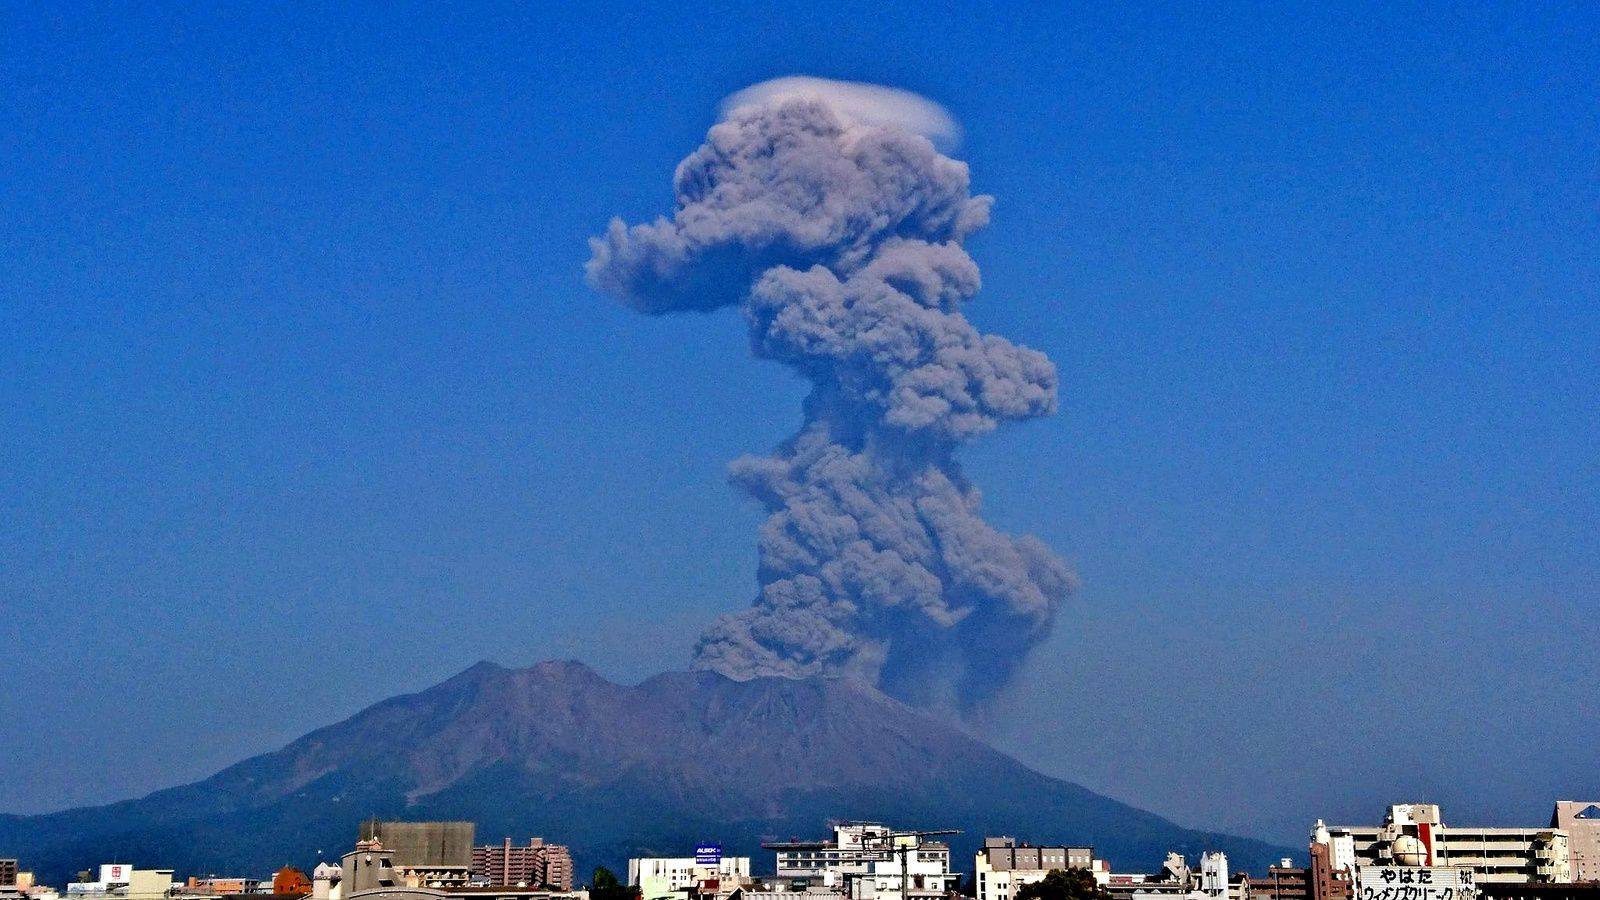 Sakurajima - eruption of 26.03.2018 / 15h40 - note the pileus surmounting the plume of ash - photo Manabu Ookubo via Facebook